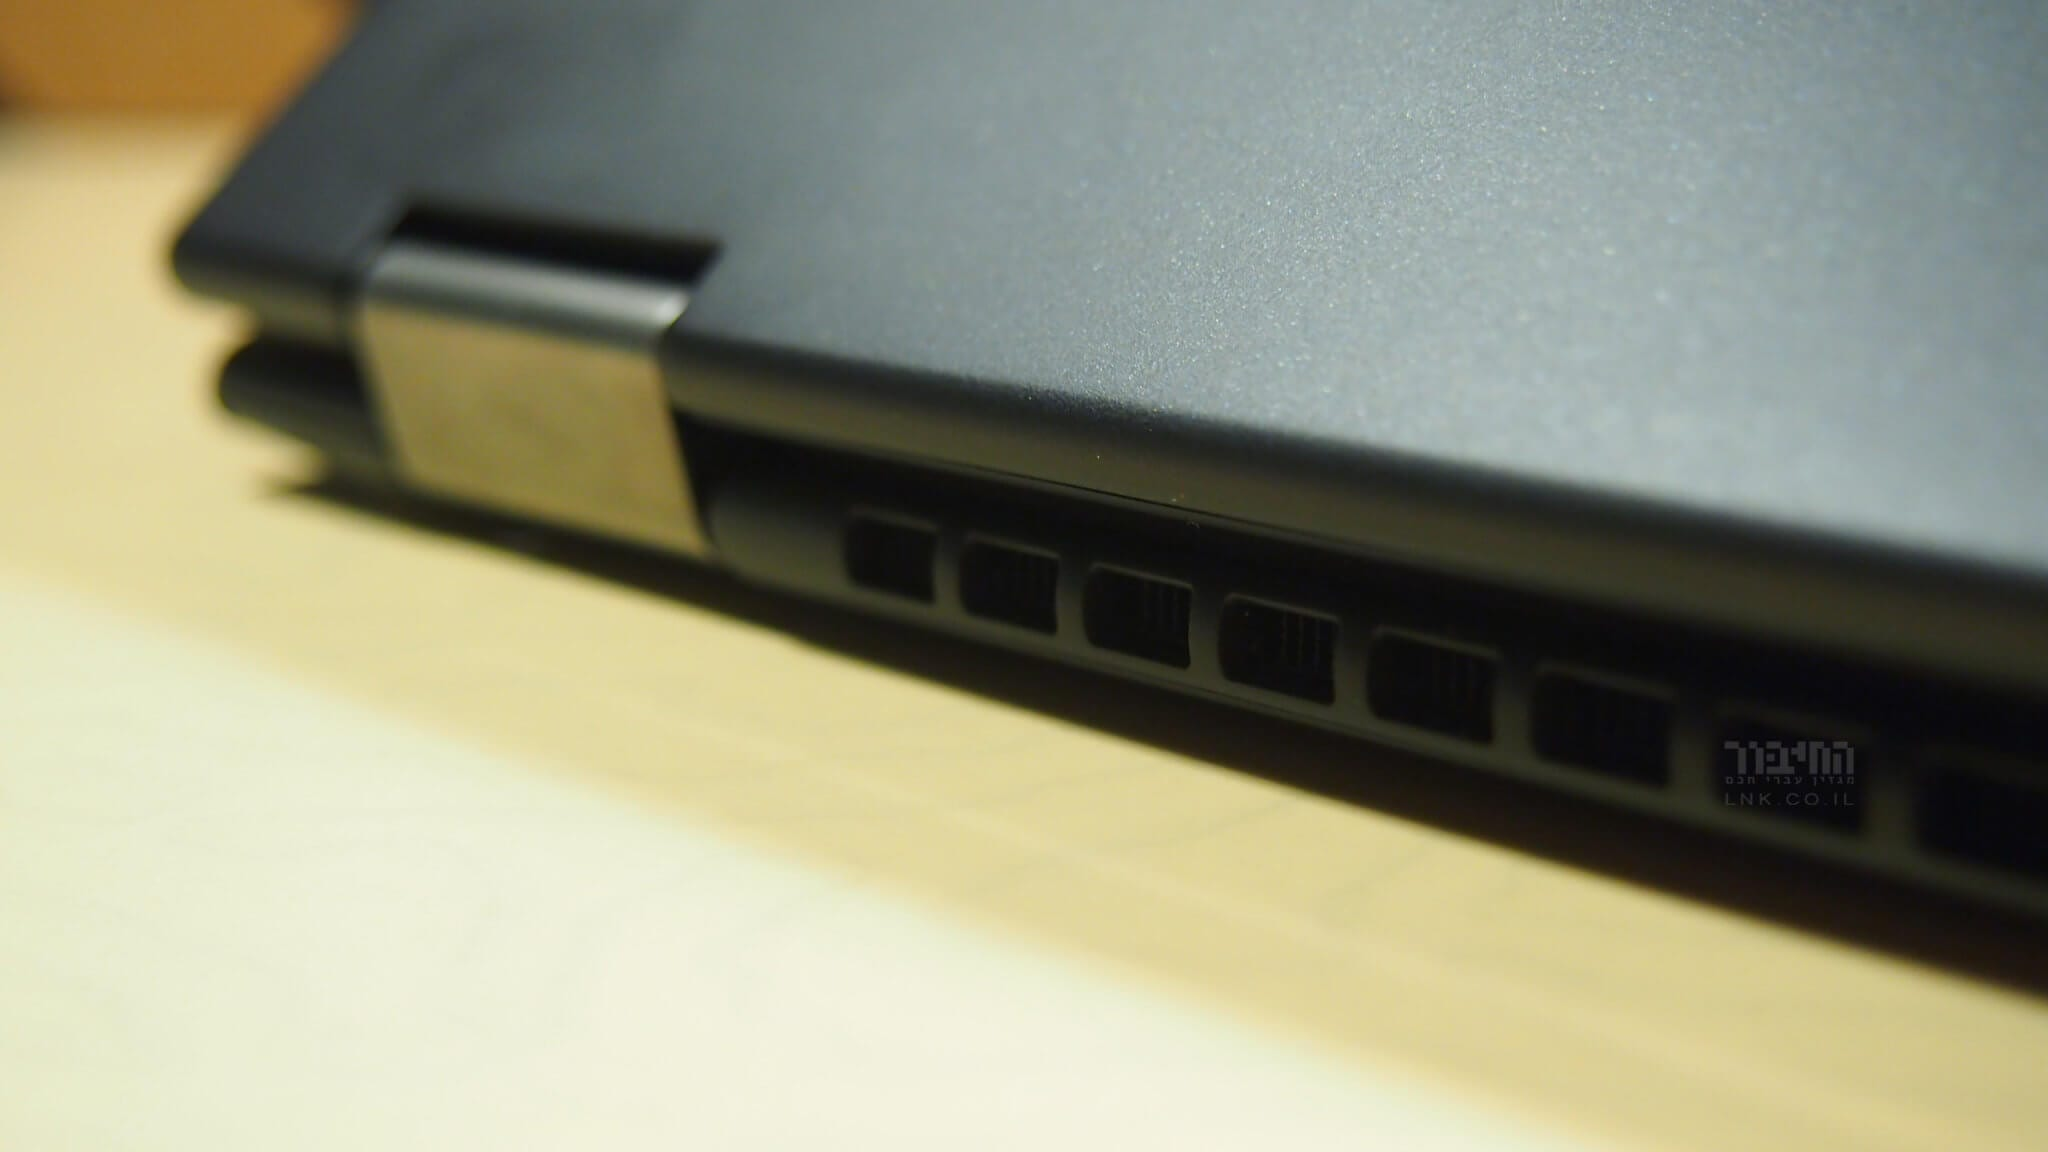 ThinkPad X13 Yoga exhaust vents